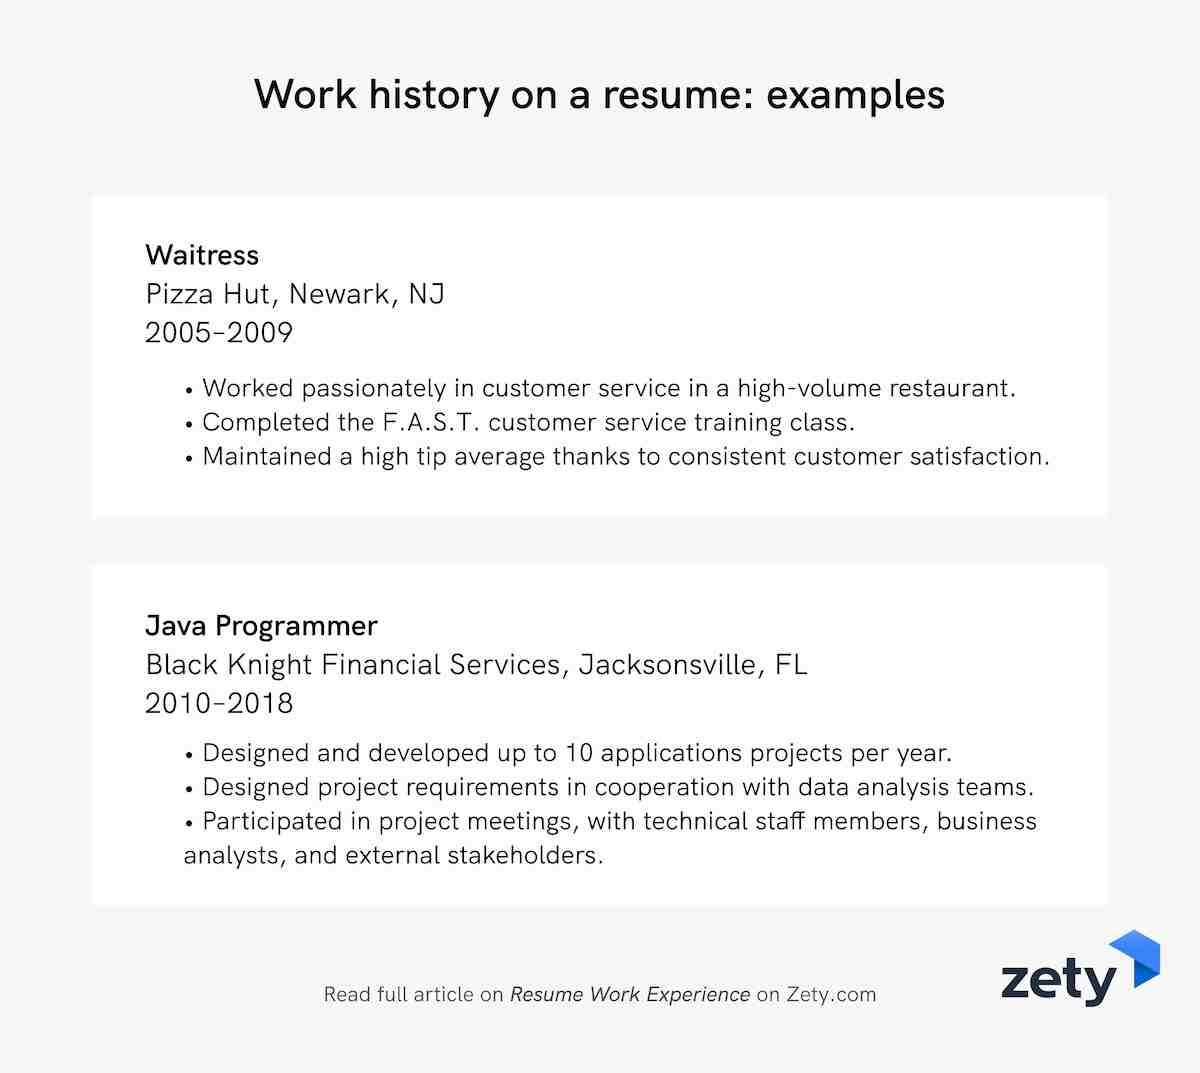 Resume work history order term papers in phonetics